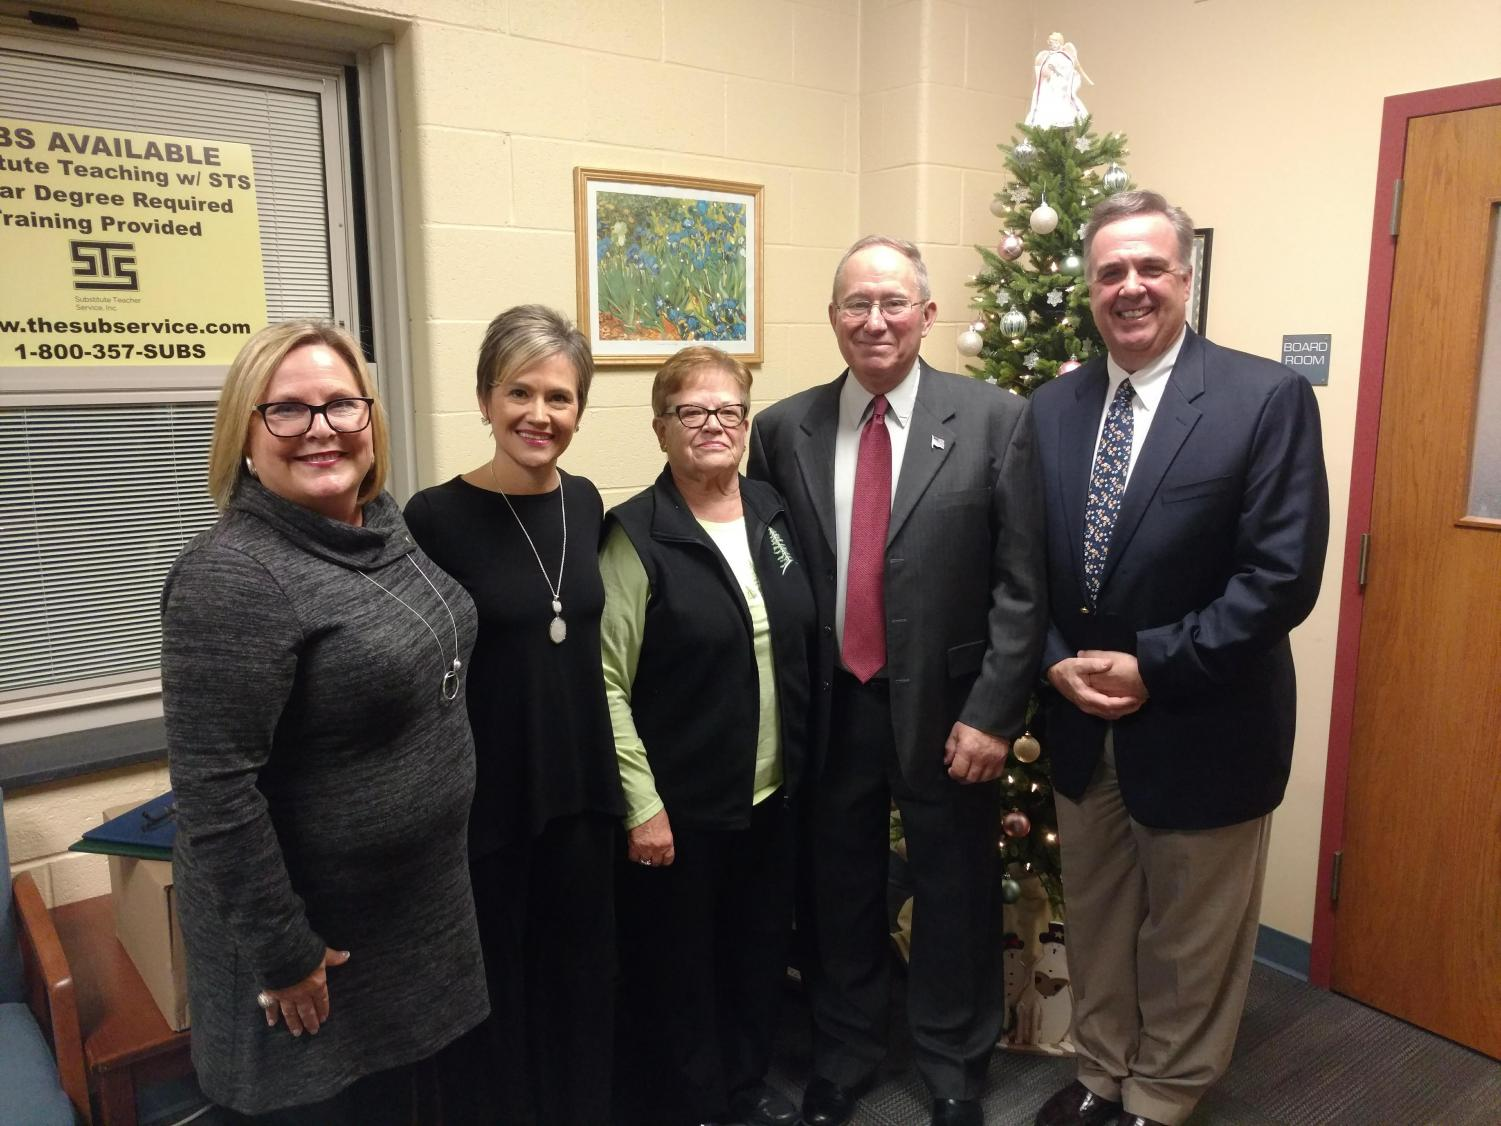 State Representative Judy Ward, Mr. Crawford's daughter Kelly Crawford Fedeli, Mr. Crawford's wife Bonnie Crawford, Jim Crawford, and State Representative Jim Gregory were all on hand to honor Board President Jim Crawford for his 36 years of service to TASD